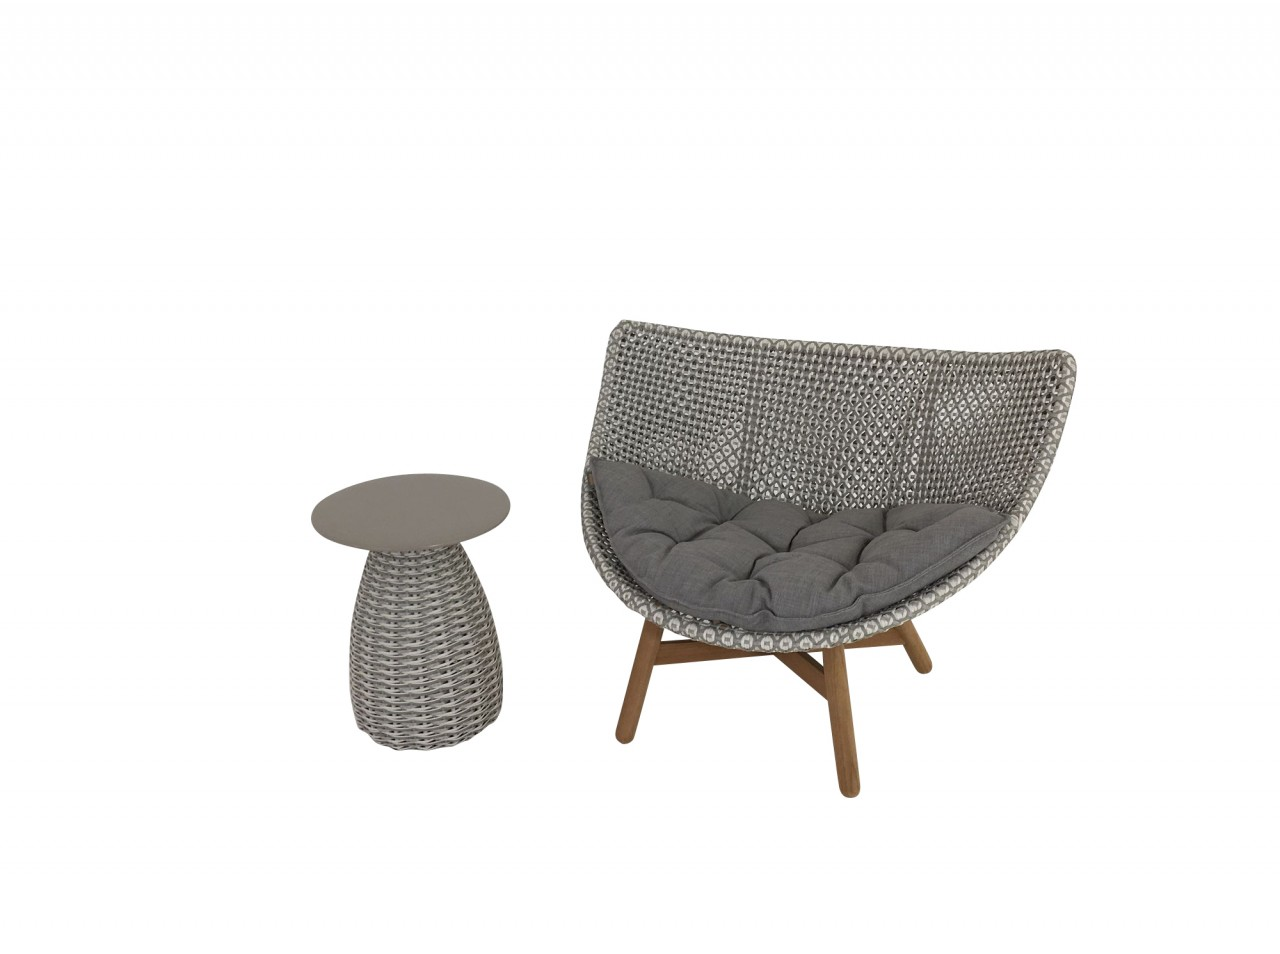 Dedon Mbrace Dedon Mbrace Lounge Chair In Limited Edition Farbe Carrara